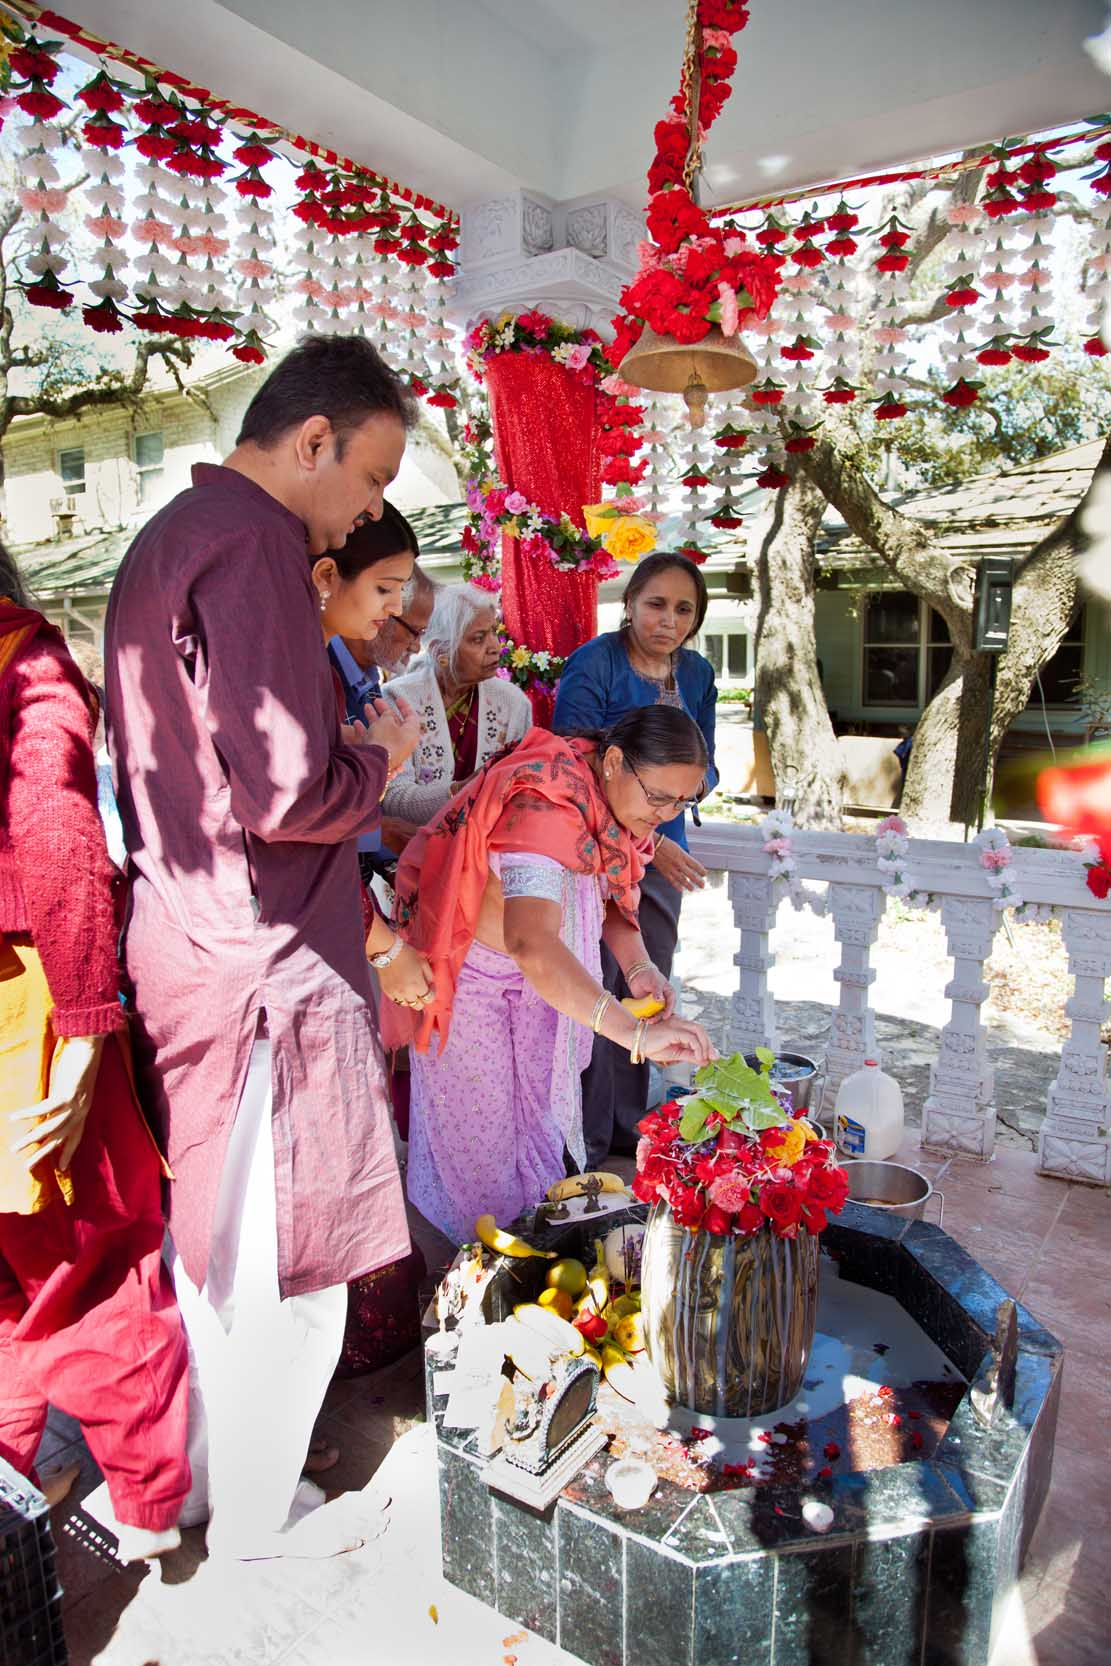 Families Together Offers Flowers of Devotion